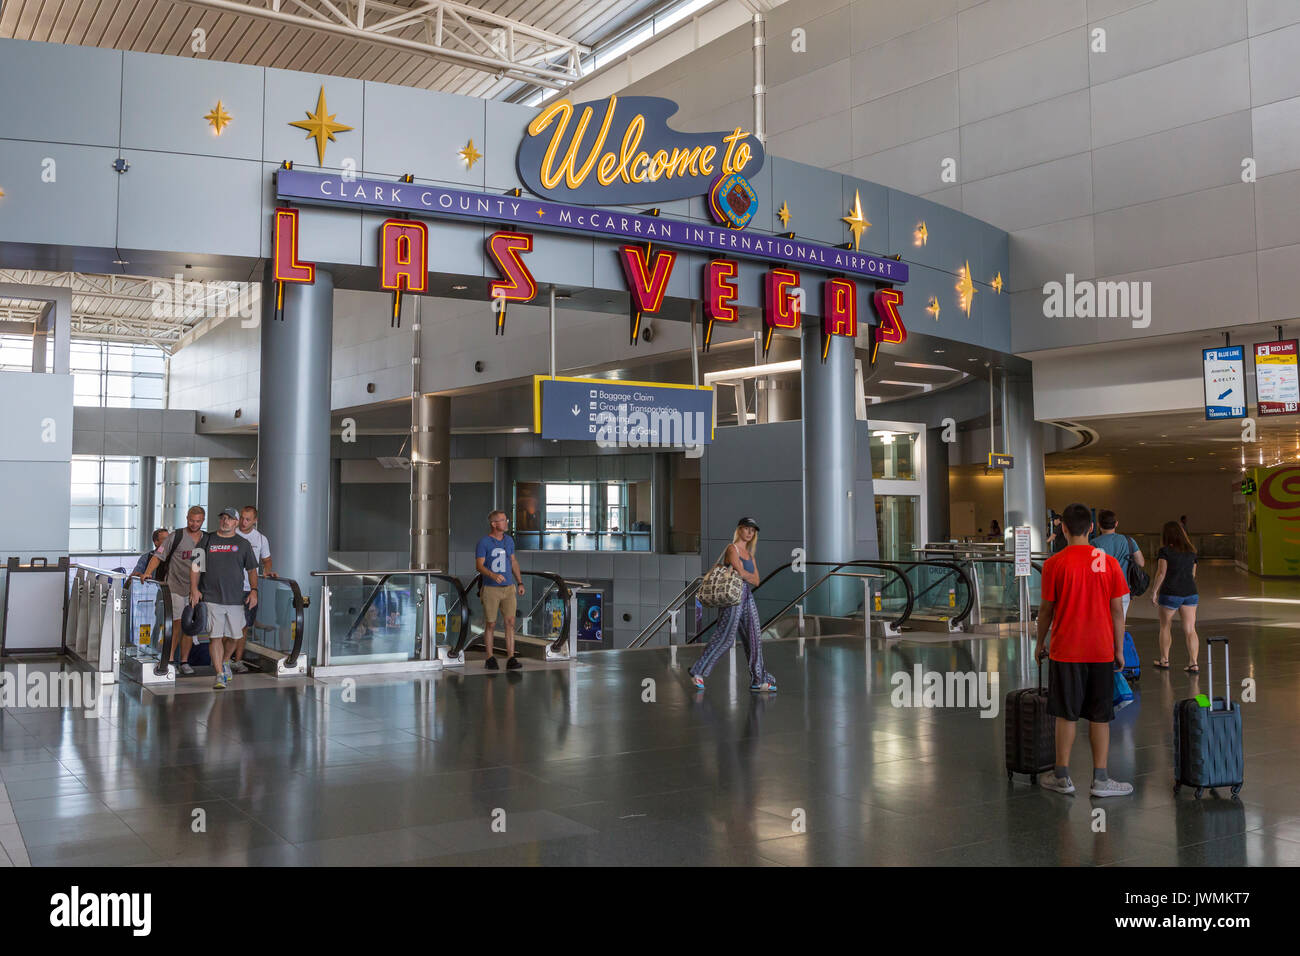 A sign in McCarran International Airport welcomes travelers to Las Vegas.  The airport is located in Paradise in - Stock Image